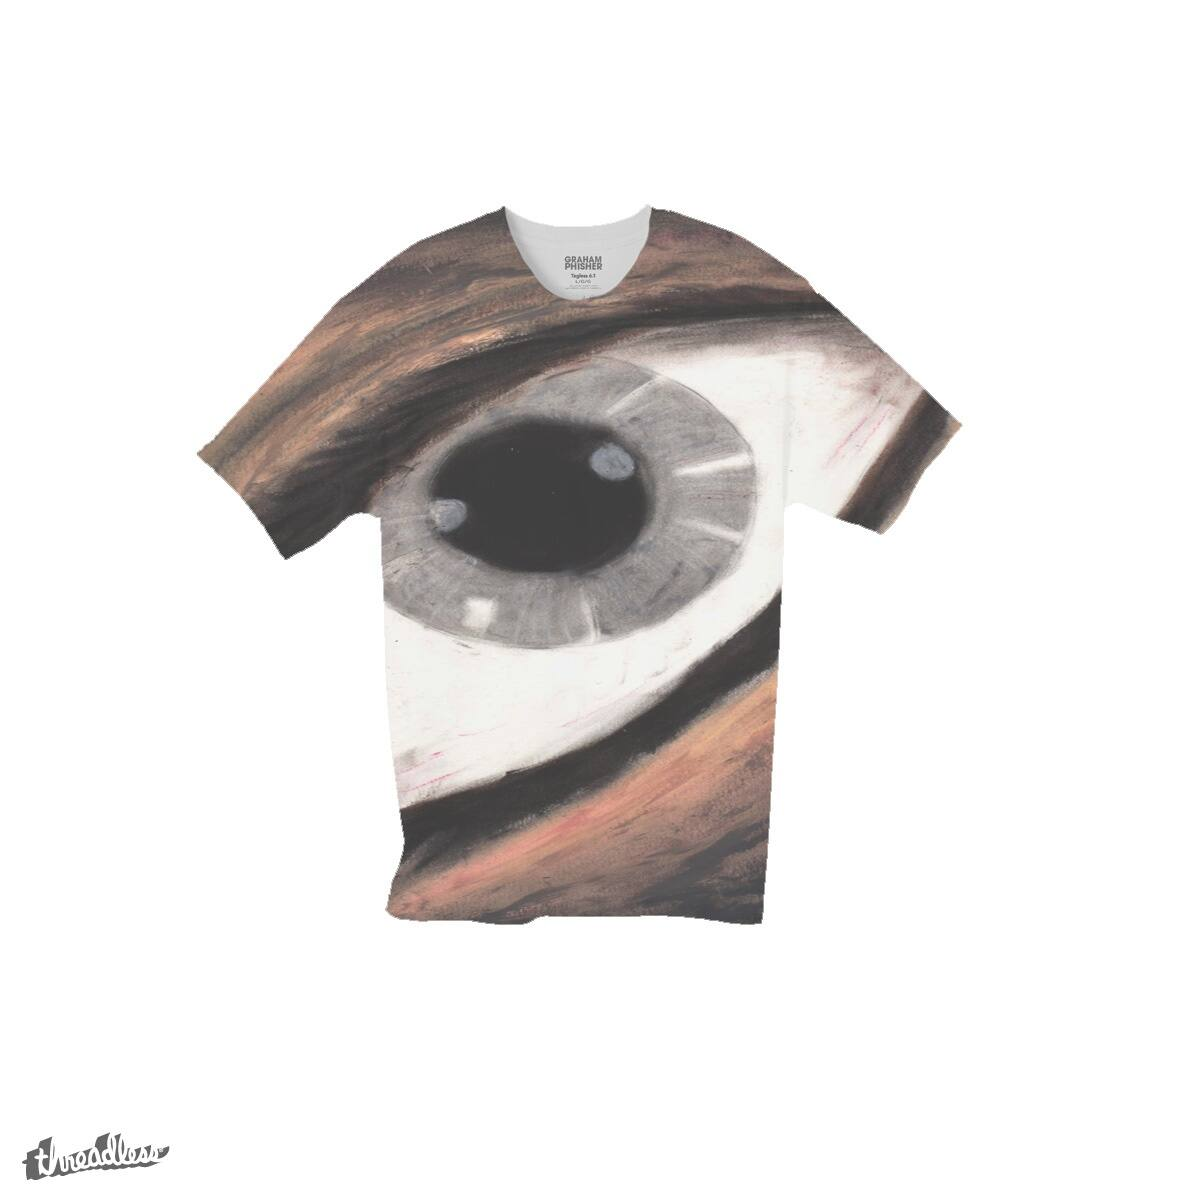 The Eye by Pyremell on Threadless